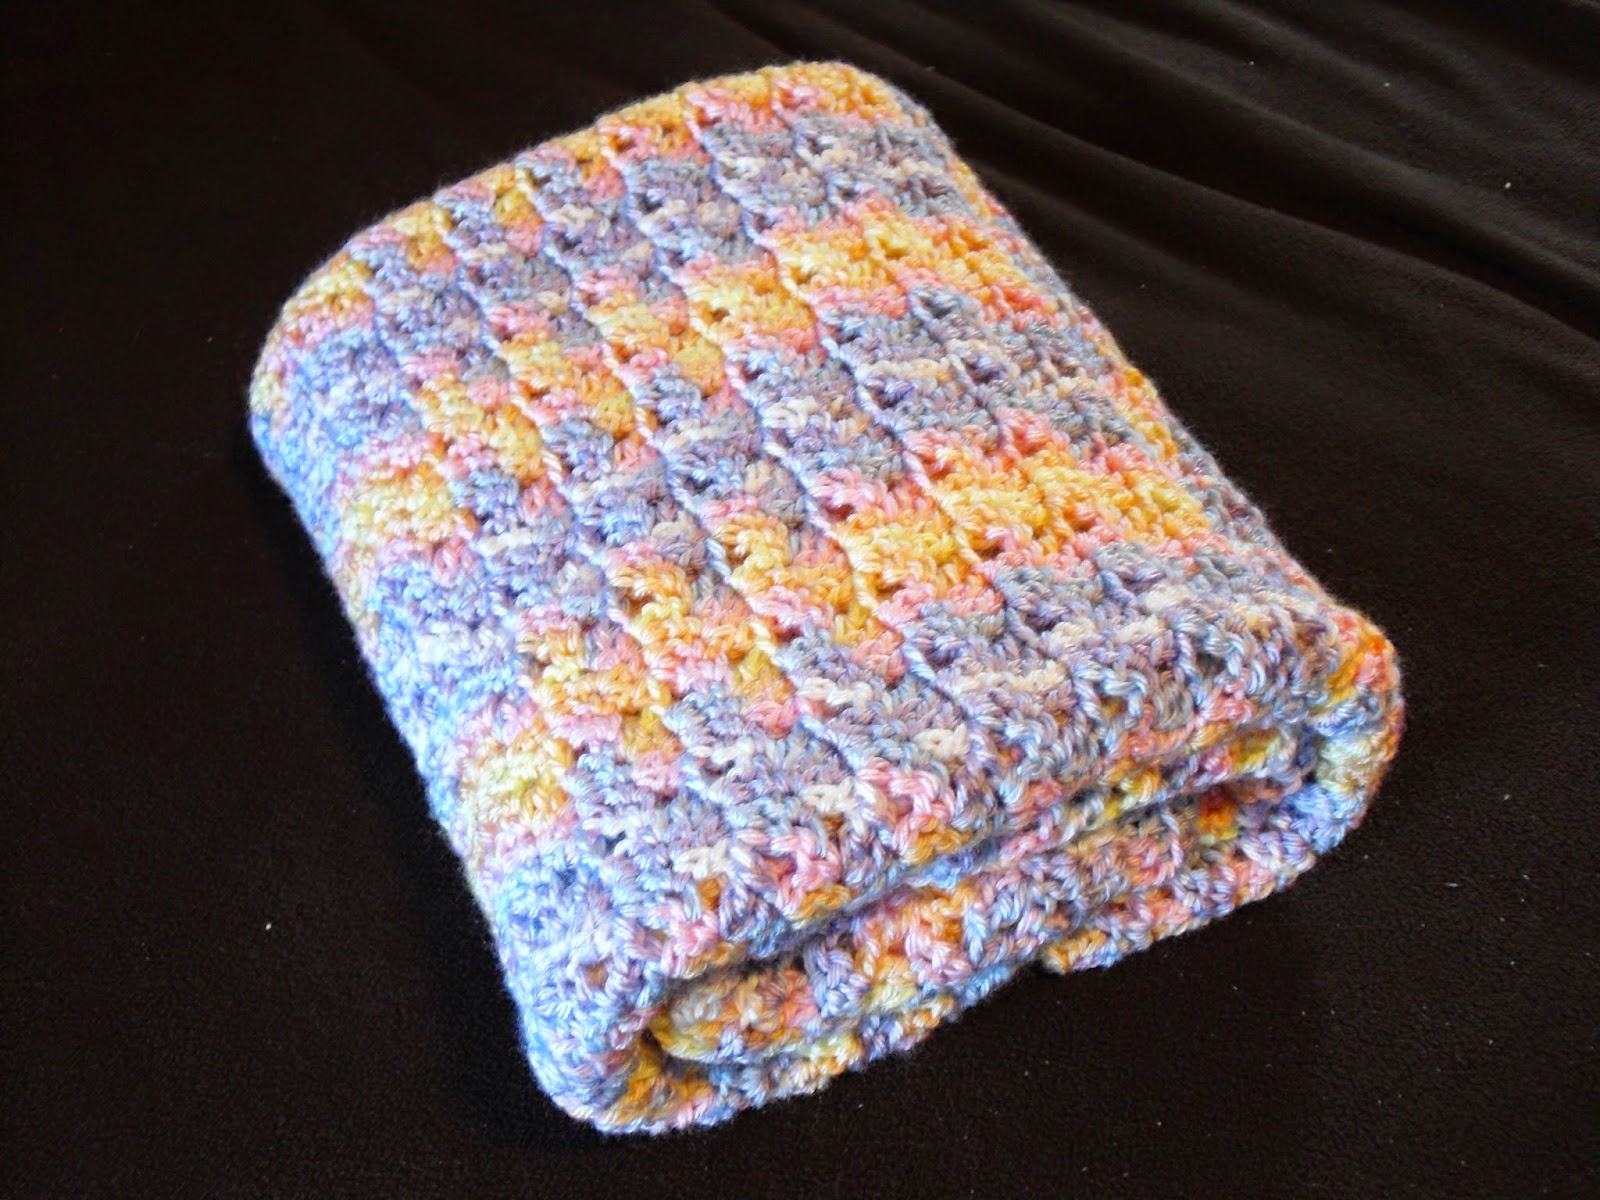 I Will Be Collecting Warm Newborn Sized Blankets For Our Winter Delivery  The Drive Will Run Until February 1, 2016